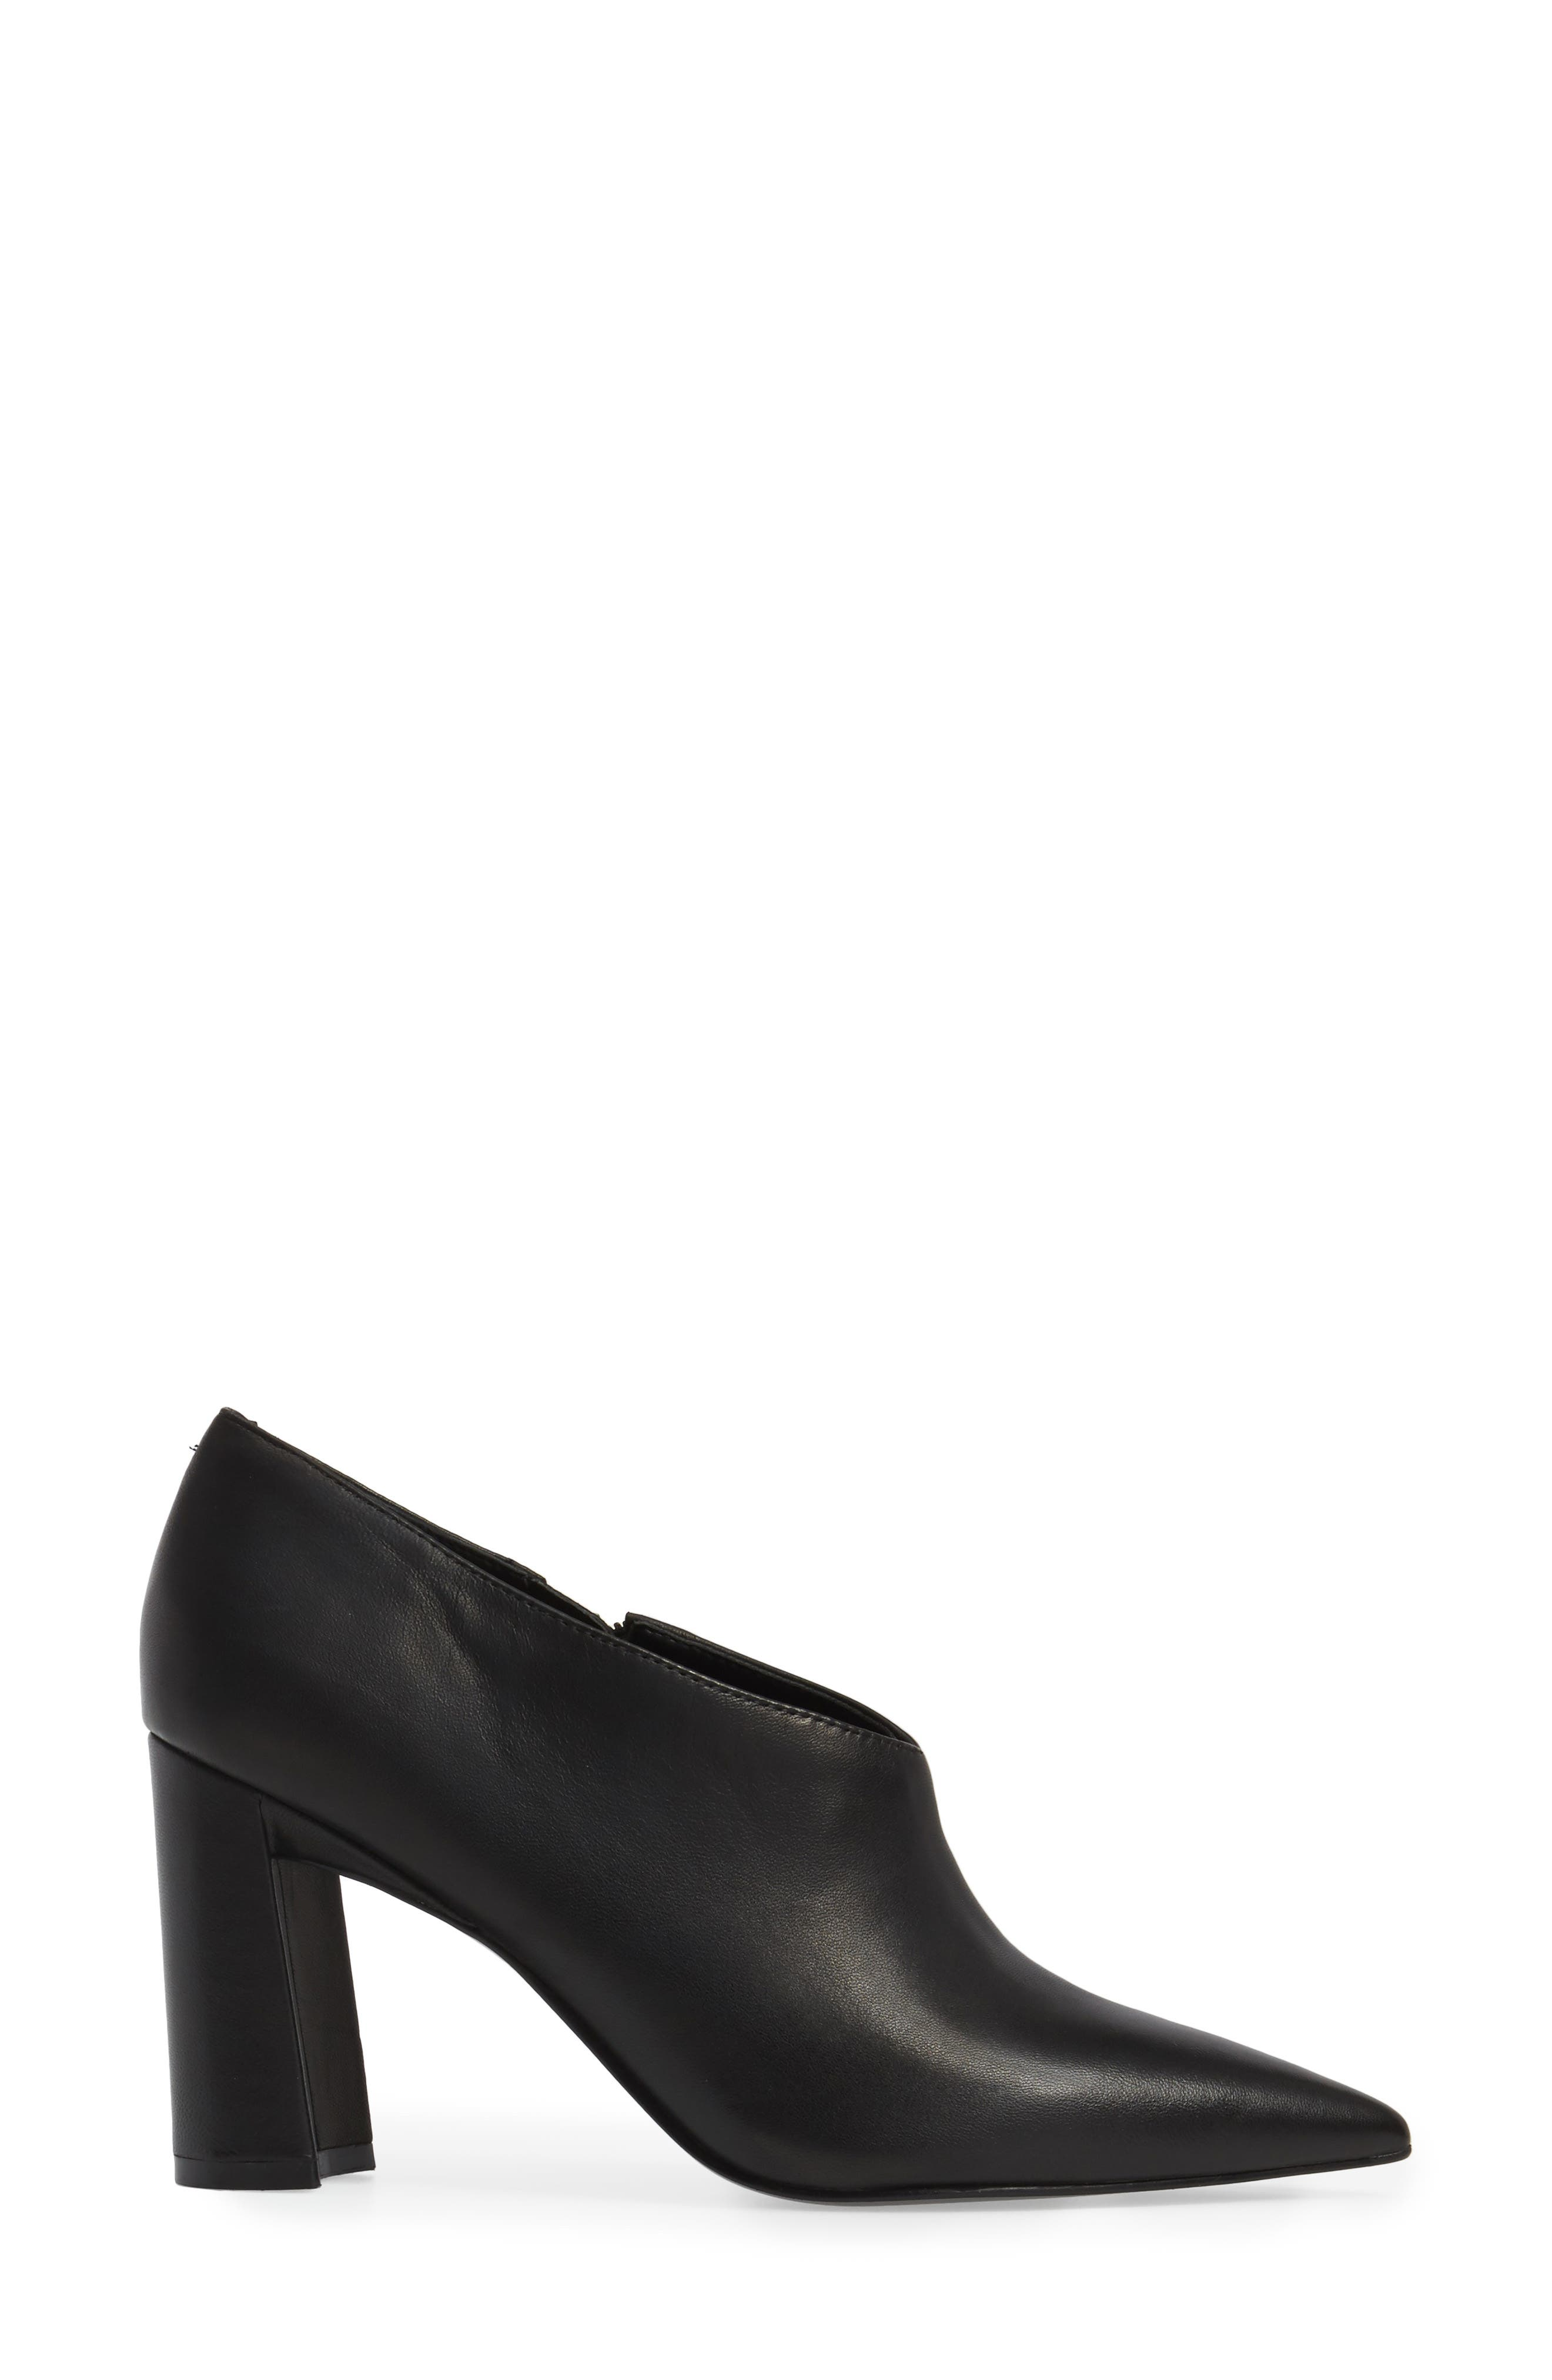 Hoda Pointy Toe Bootie,                             Alternate thumbnail 3, color,                             Black Leather